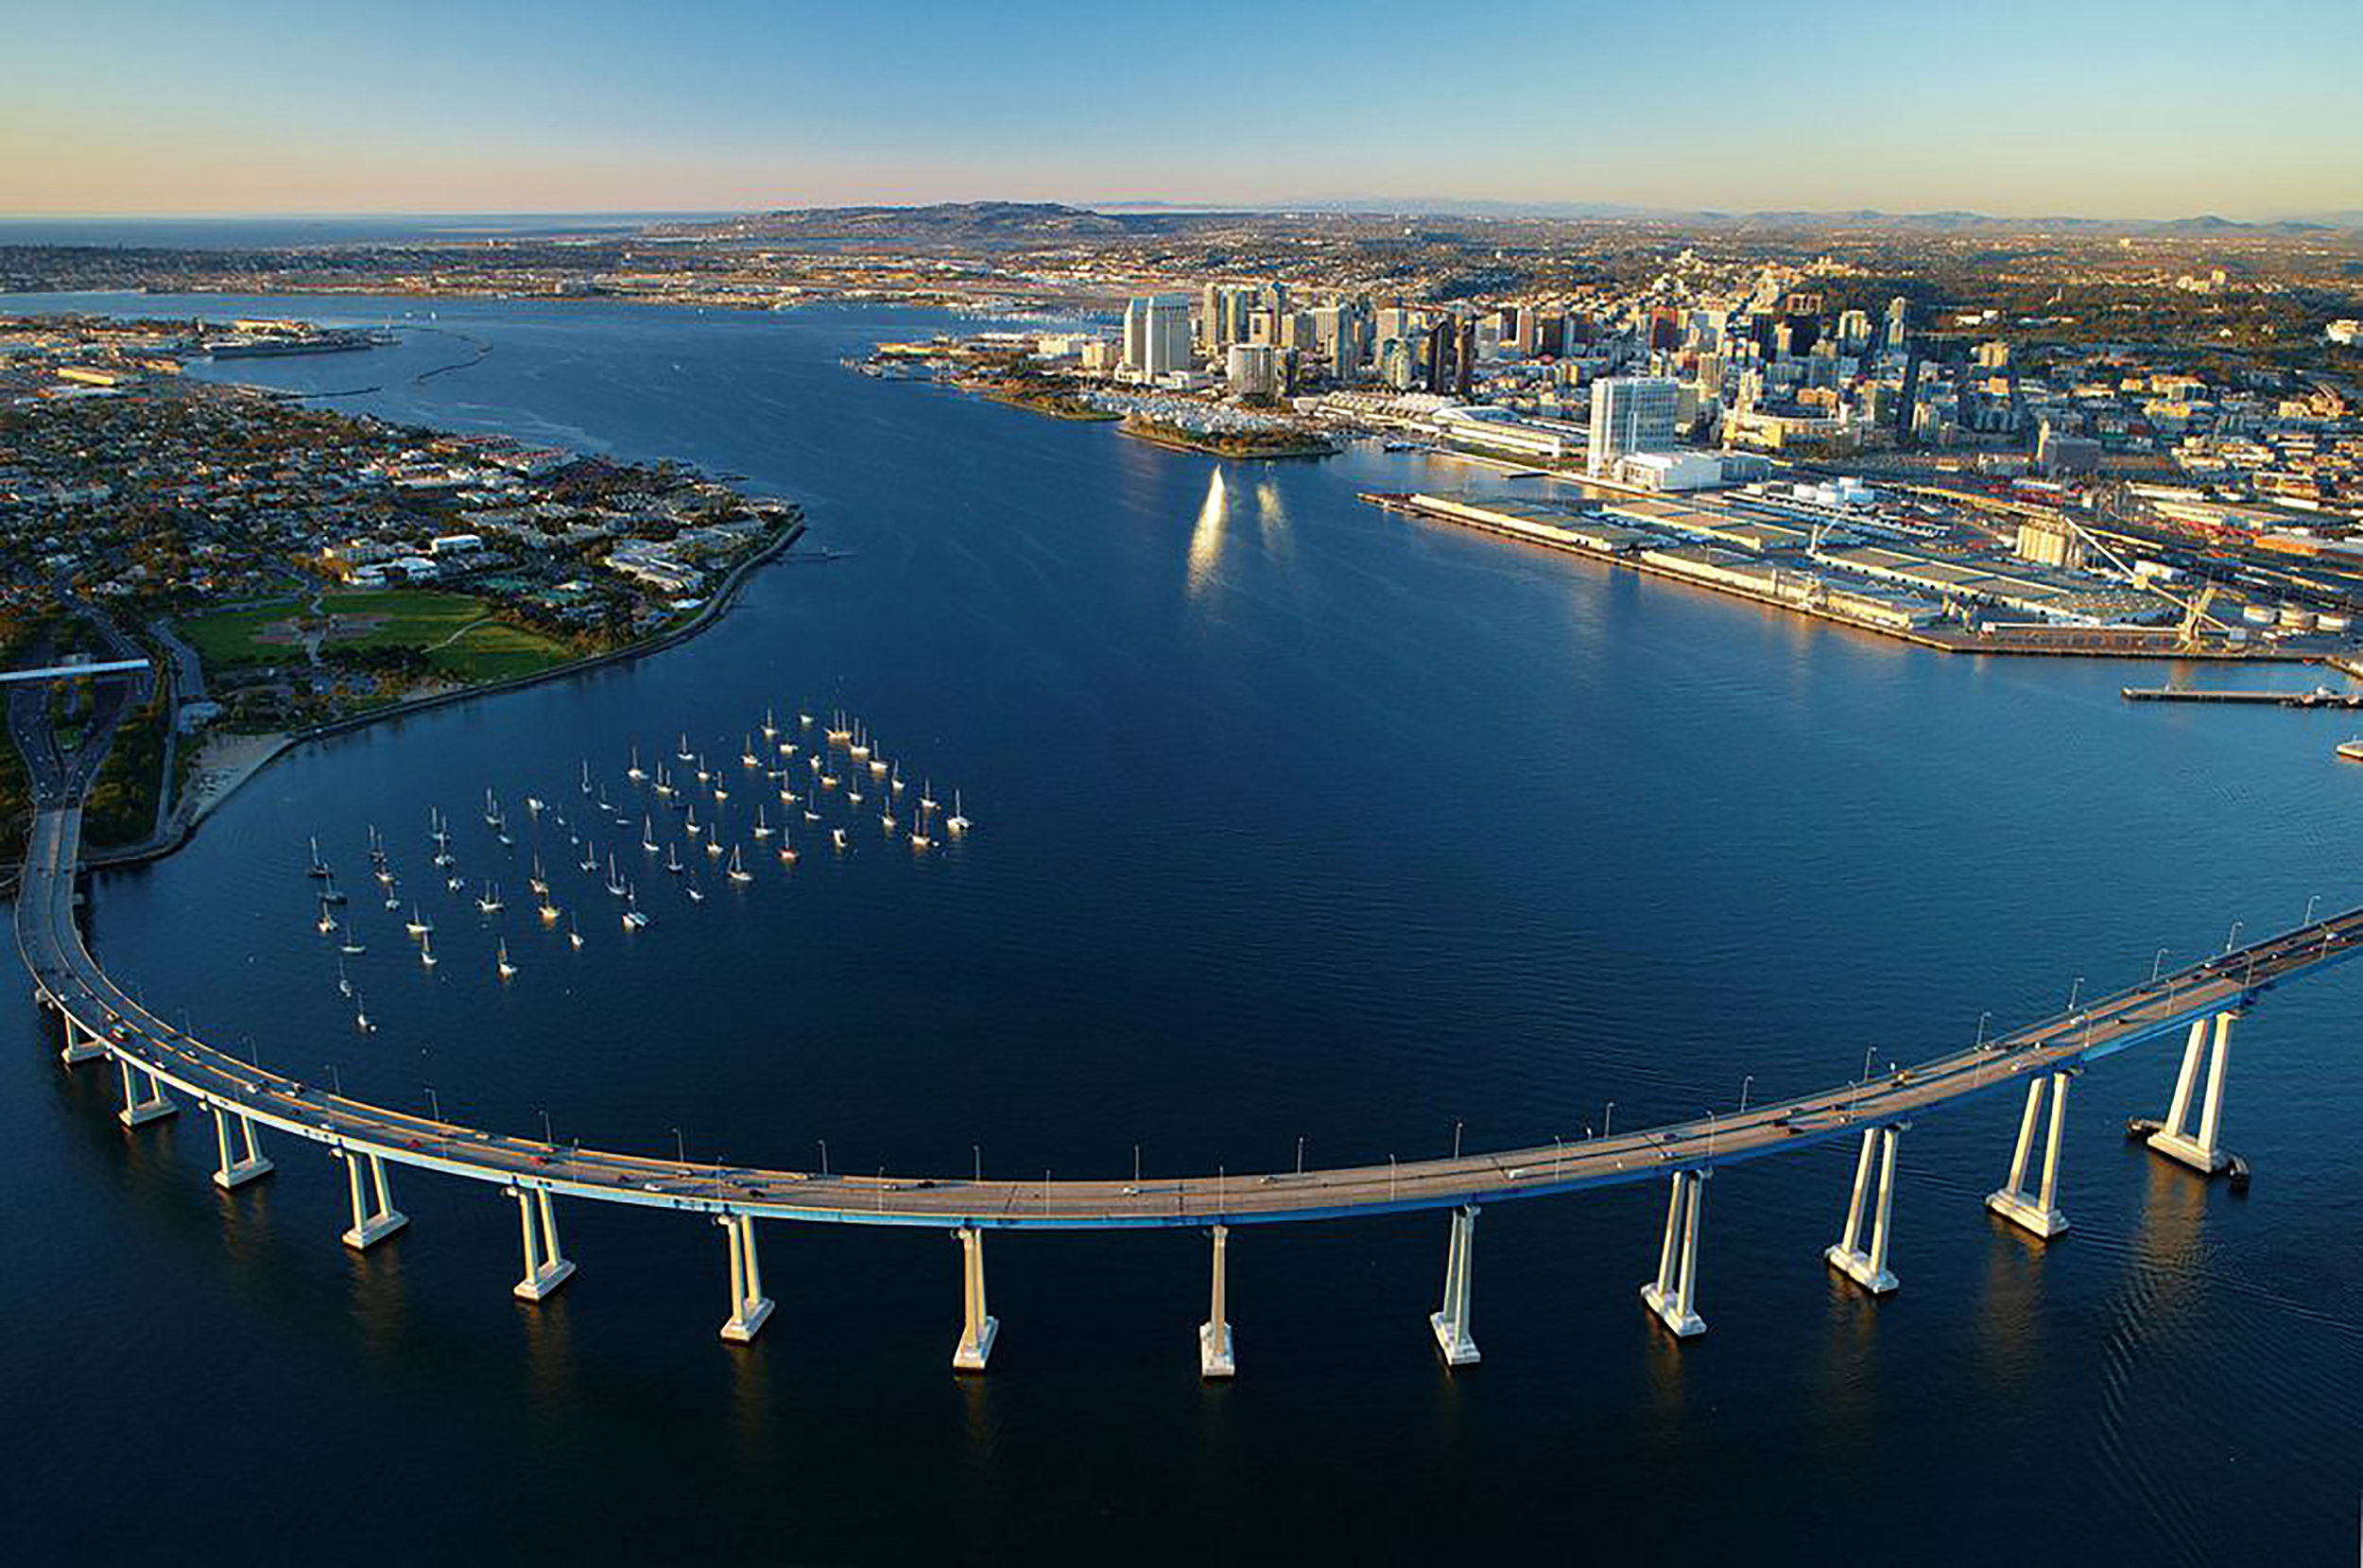 San Diego Bay, with its iconic Coronado Bridge, represents just one of SoCal's many harbors with great fishing opportunities. Phillip Colla / oceanlight.com